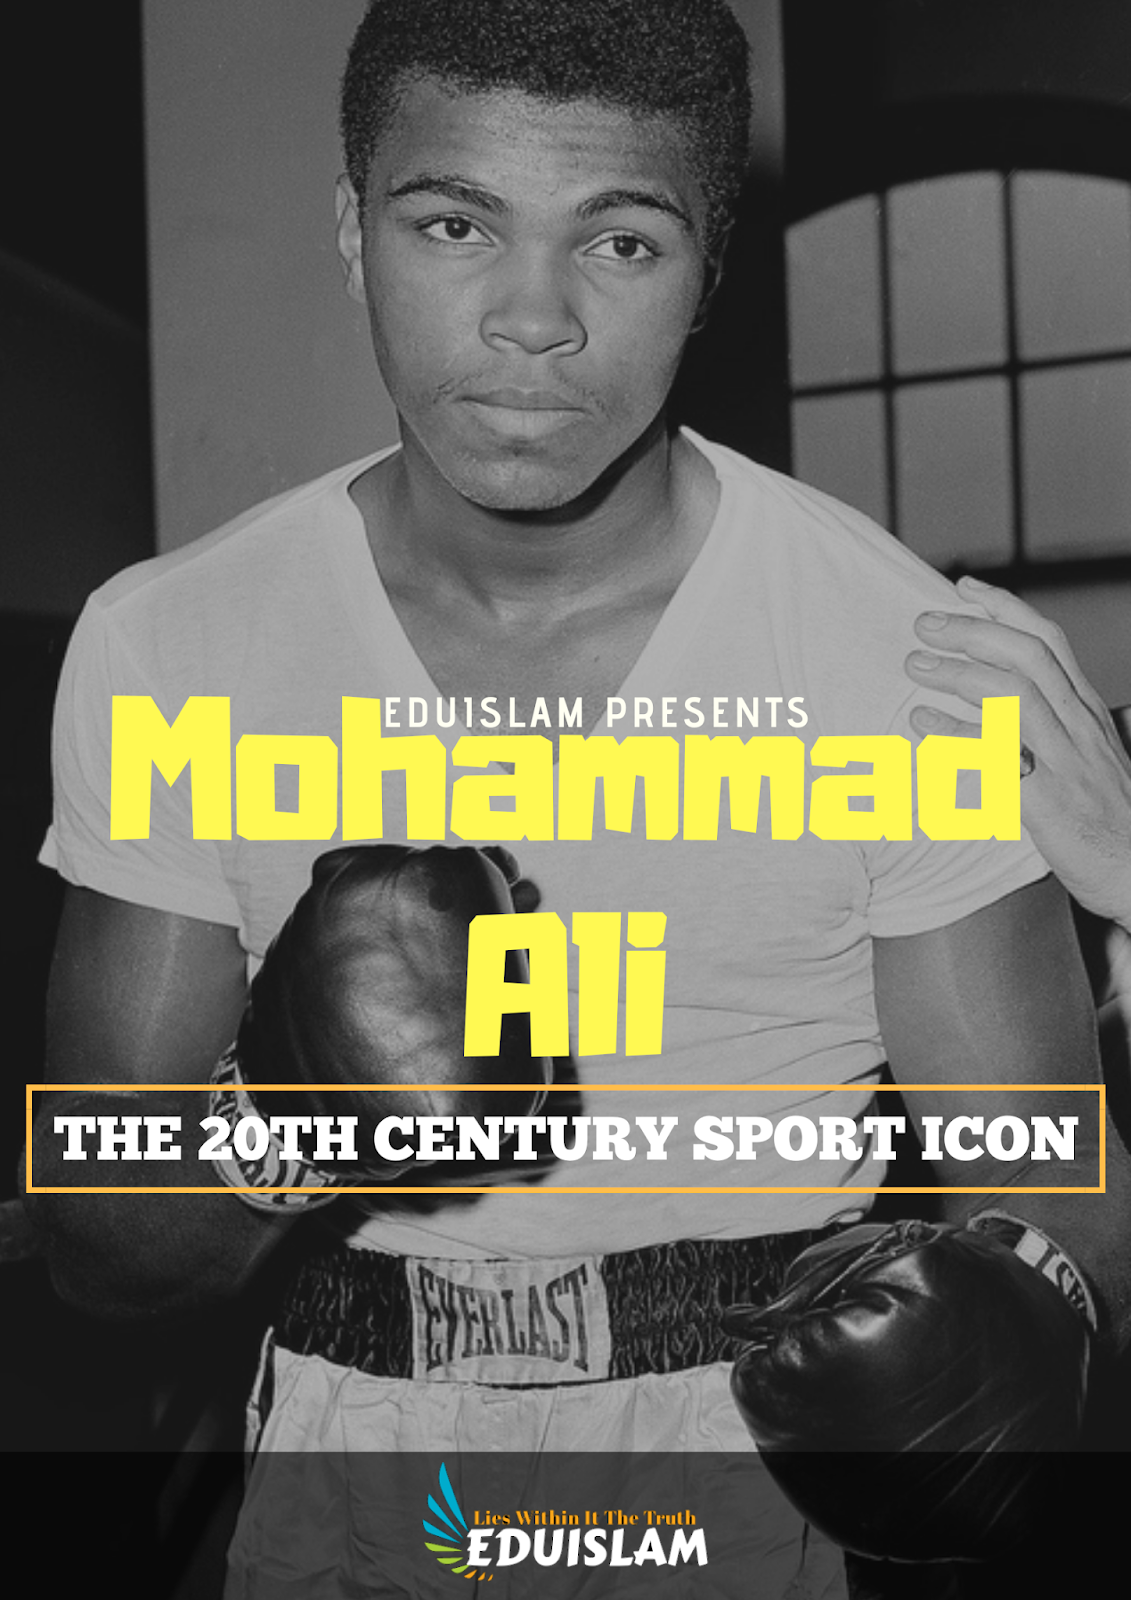 What Was The Best Moment For Mohammad Ali?